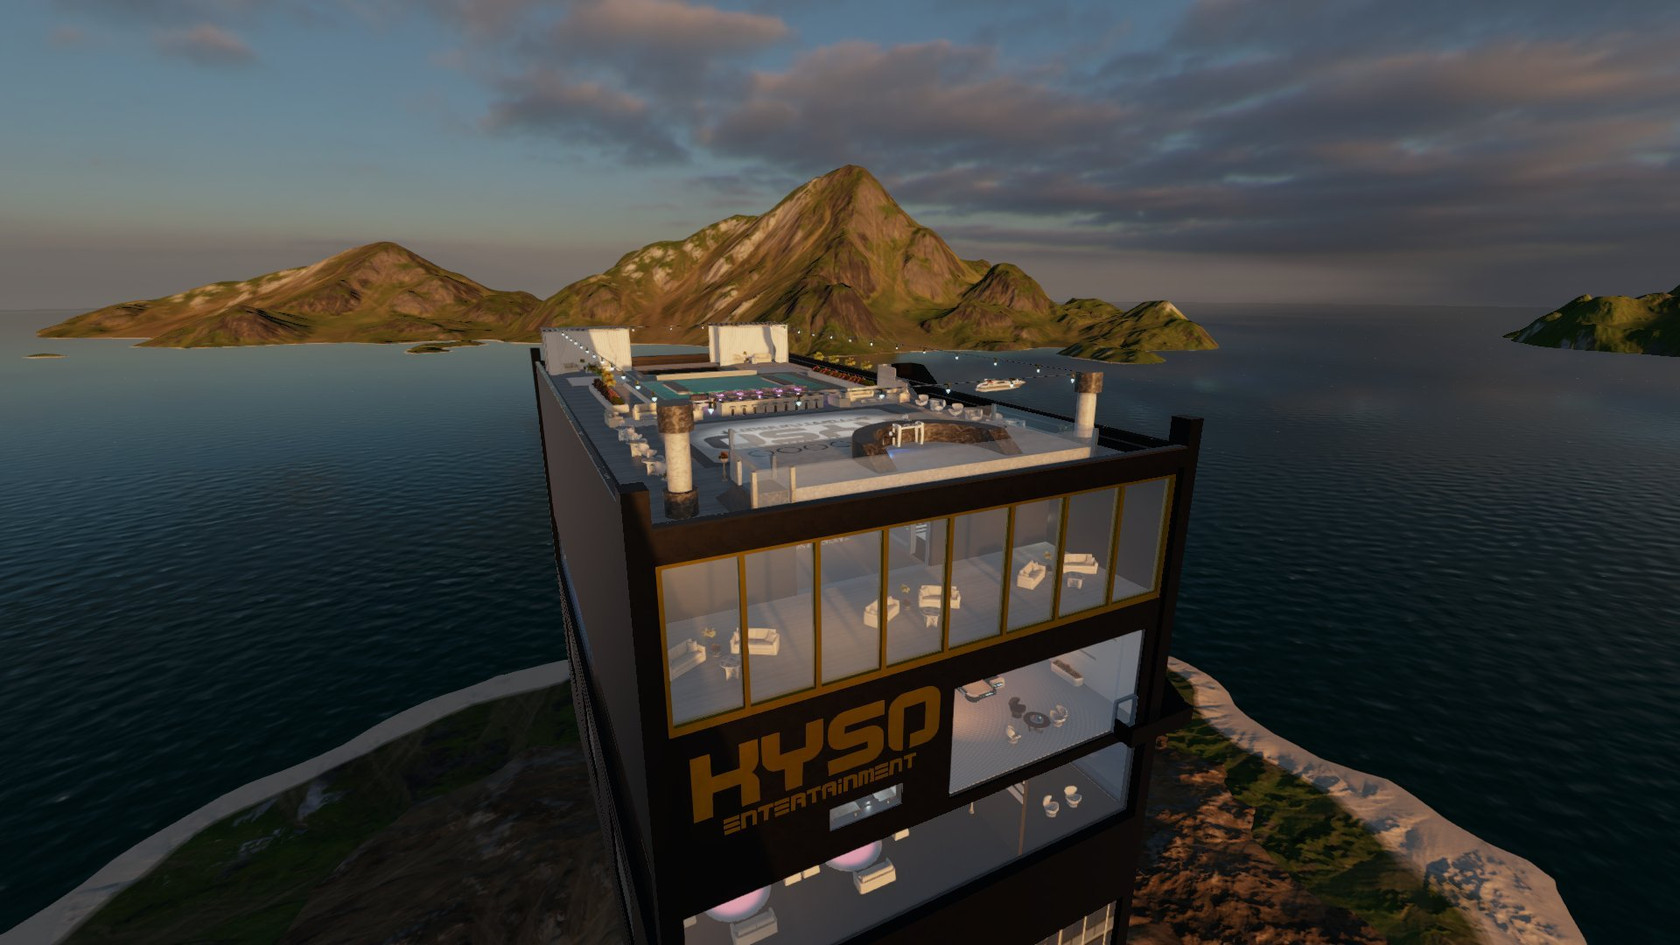 Kyso Entertainment Central Home  by Kylan